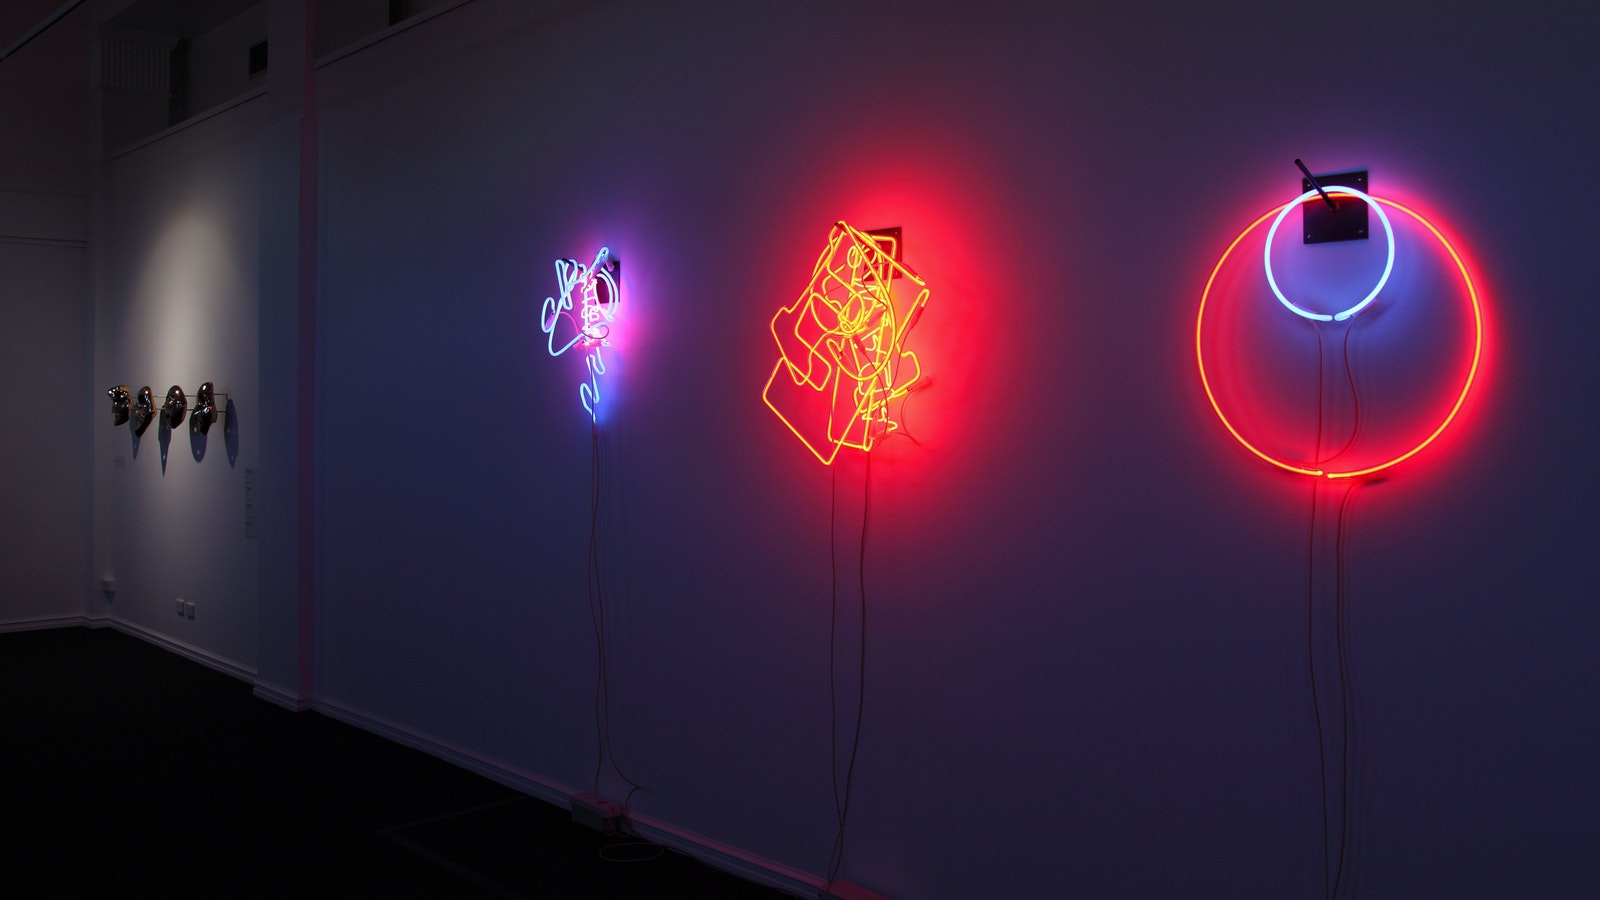 Bronze wall pieces by Darren Sylvester and neon works by Brendan Van Heck